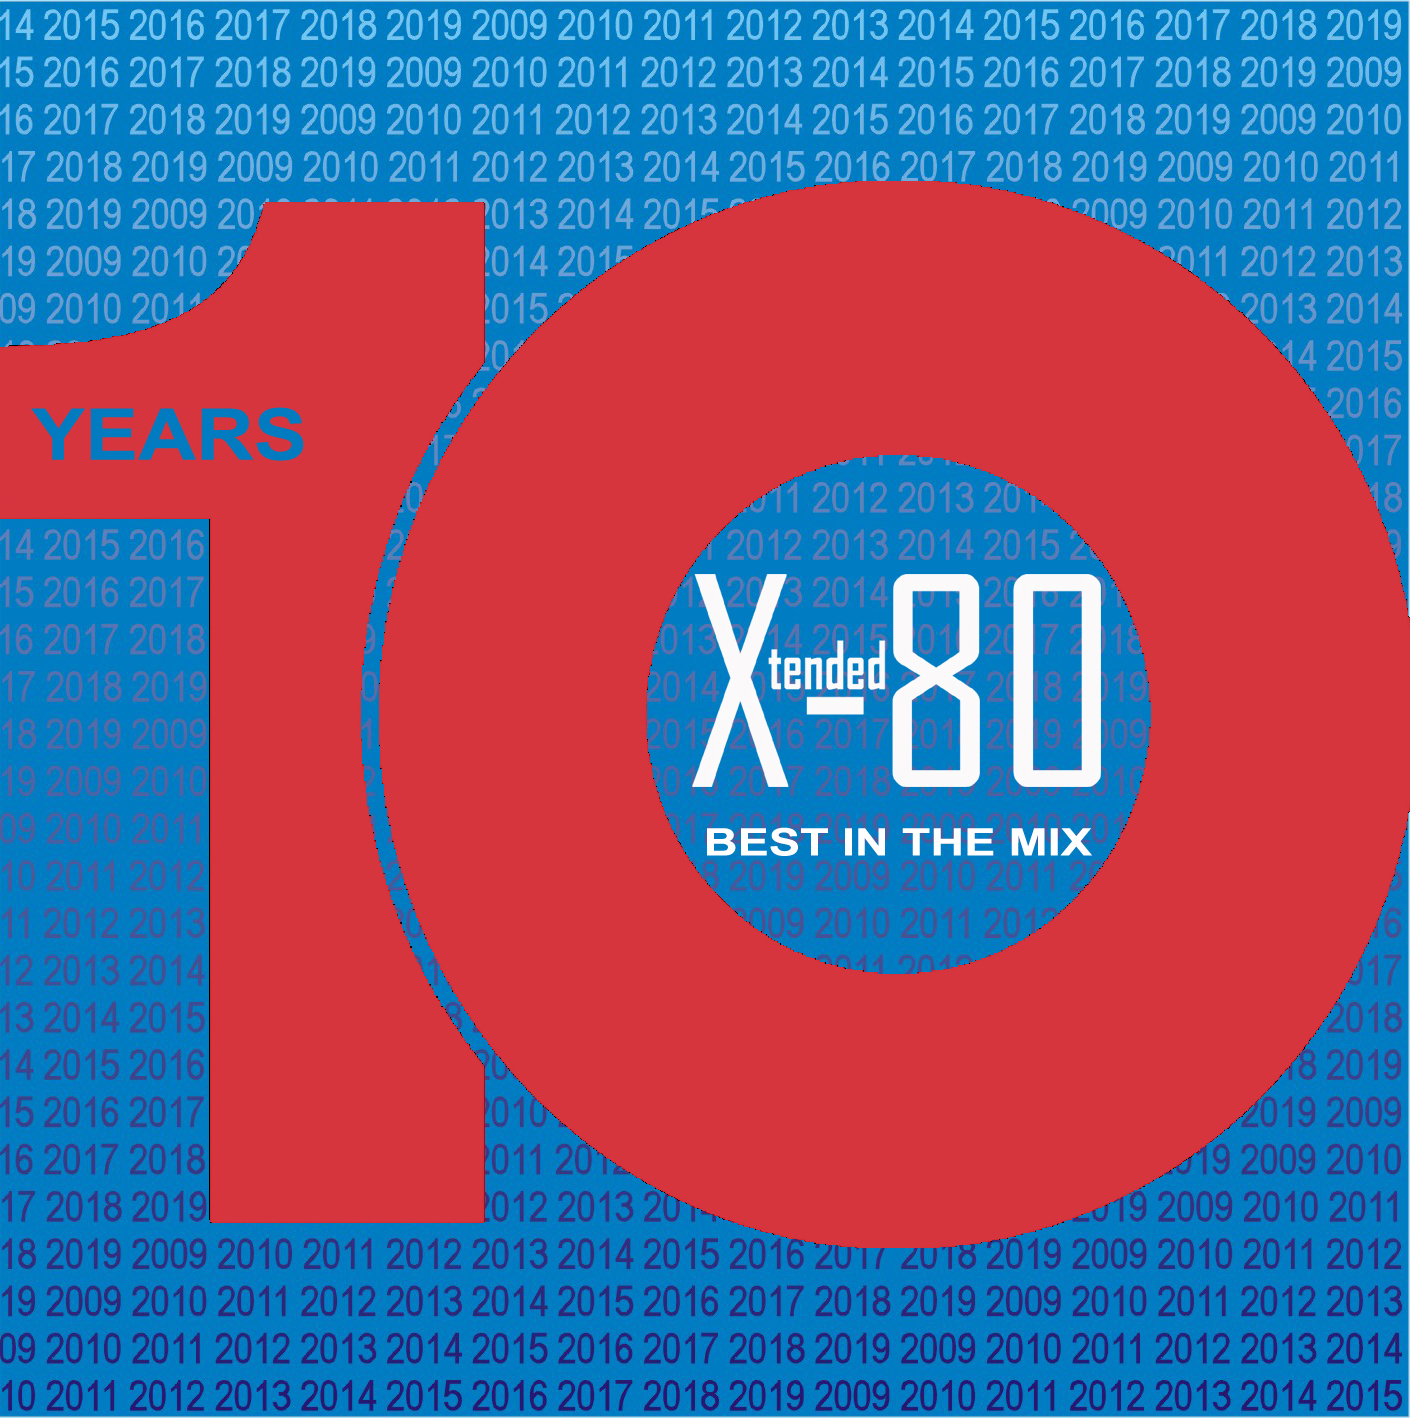 Xtended 80 Ten Years, Best In The Mix